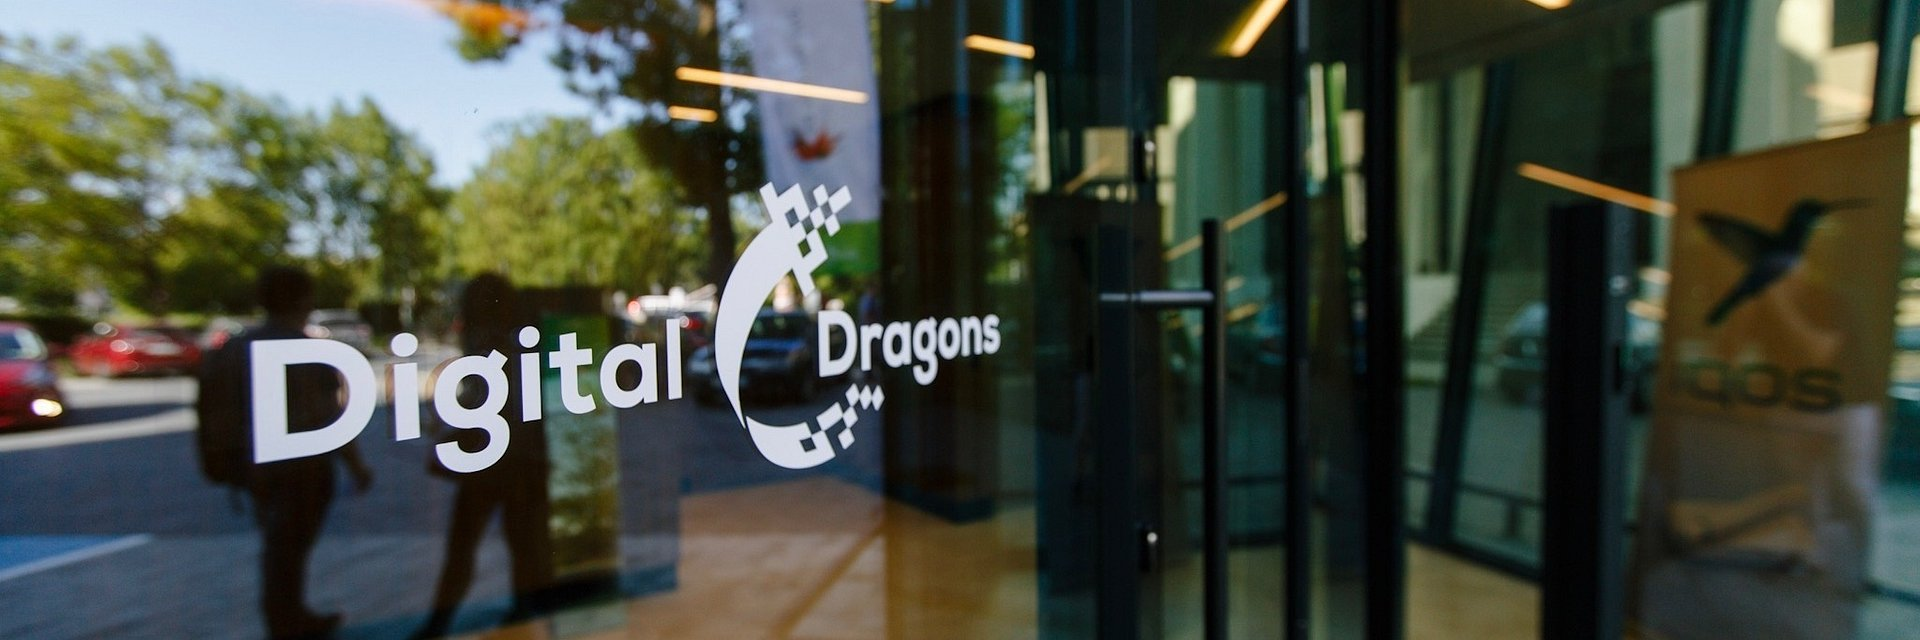 Digital Dragons 2020 postponed